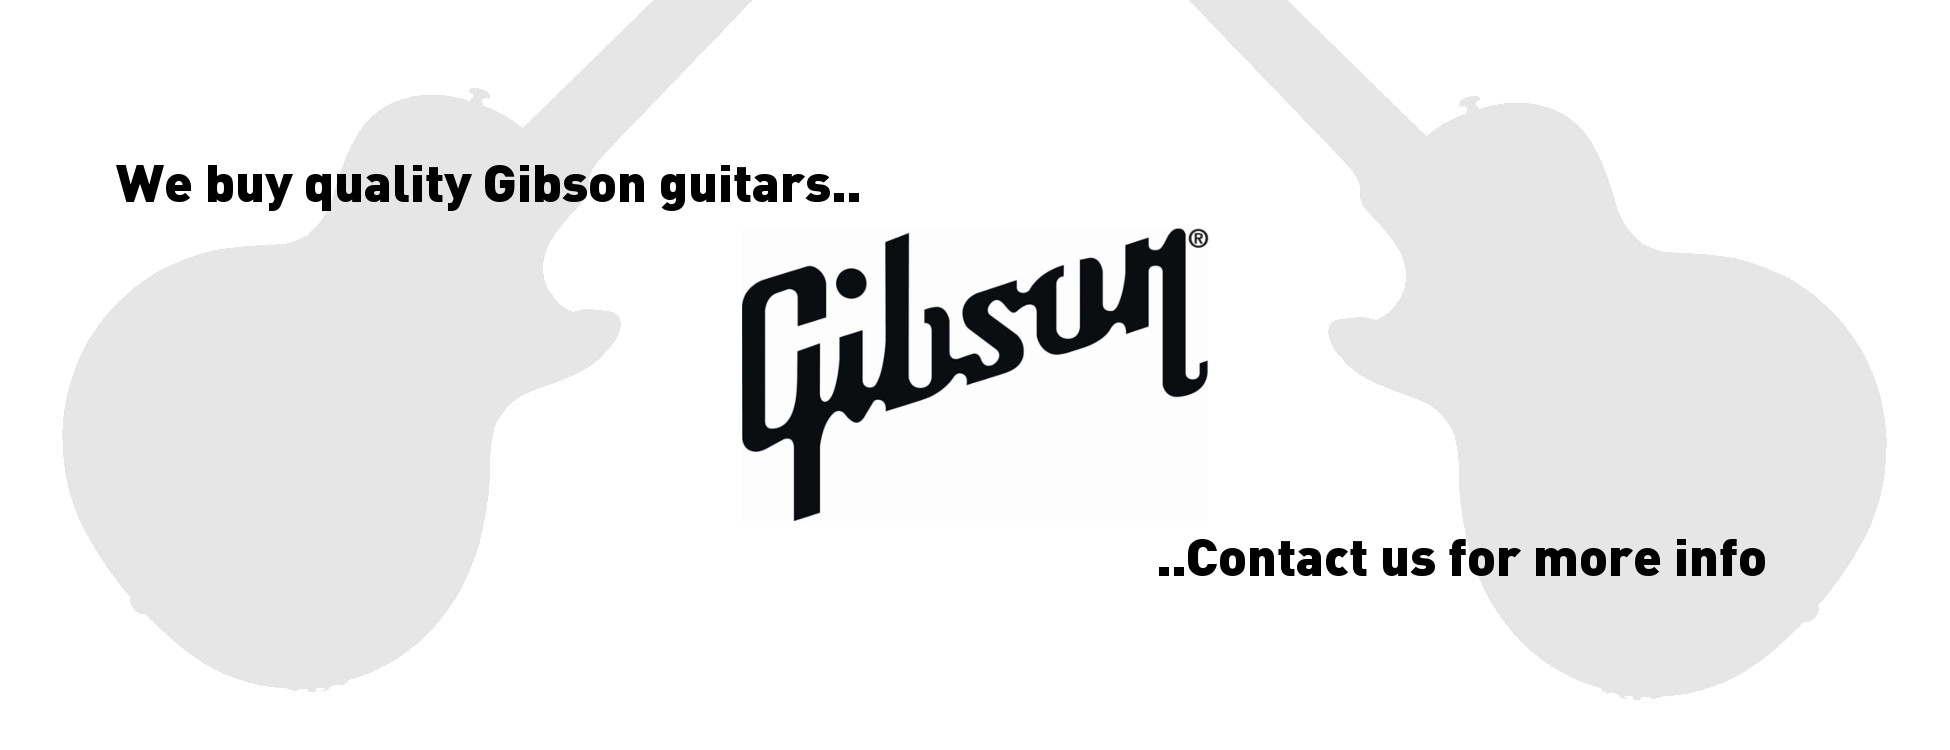 We buy quality gibson guitars